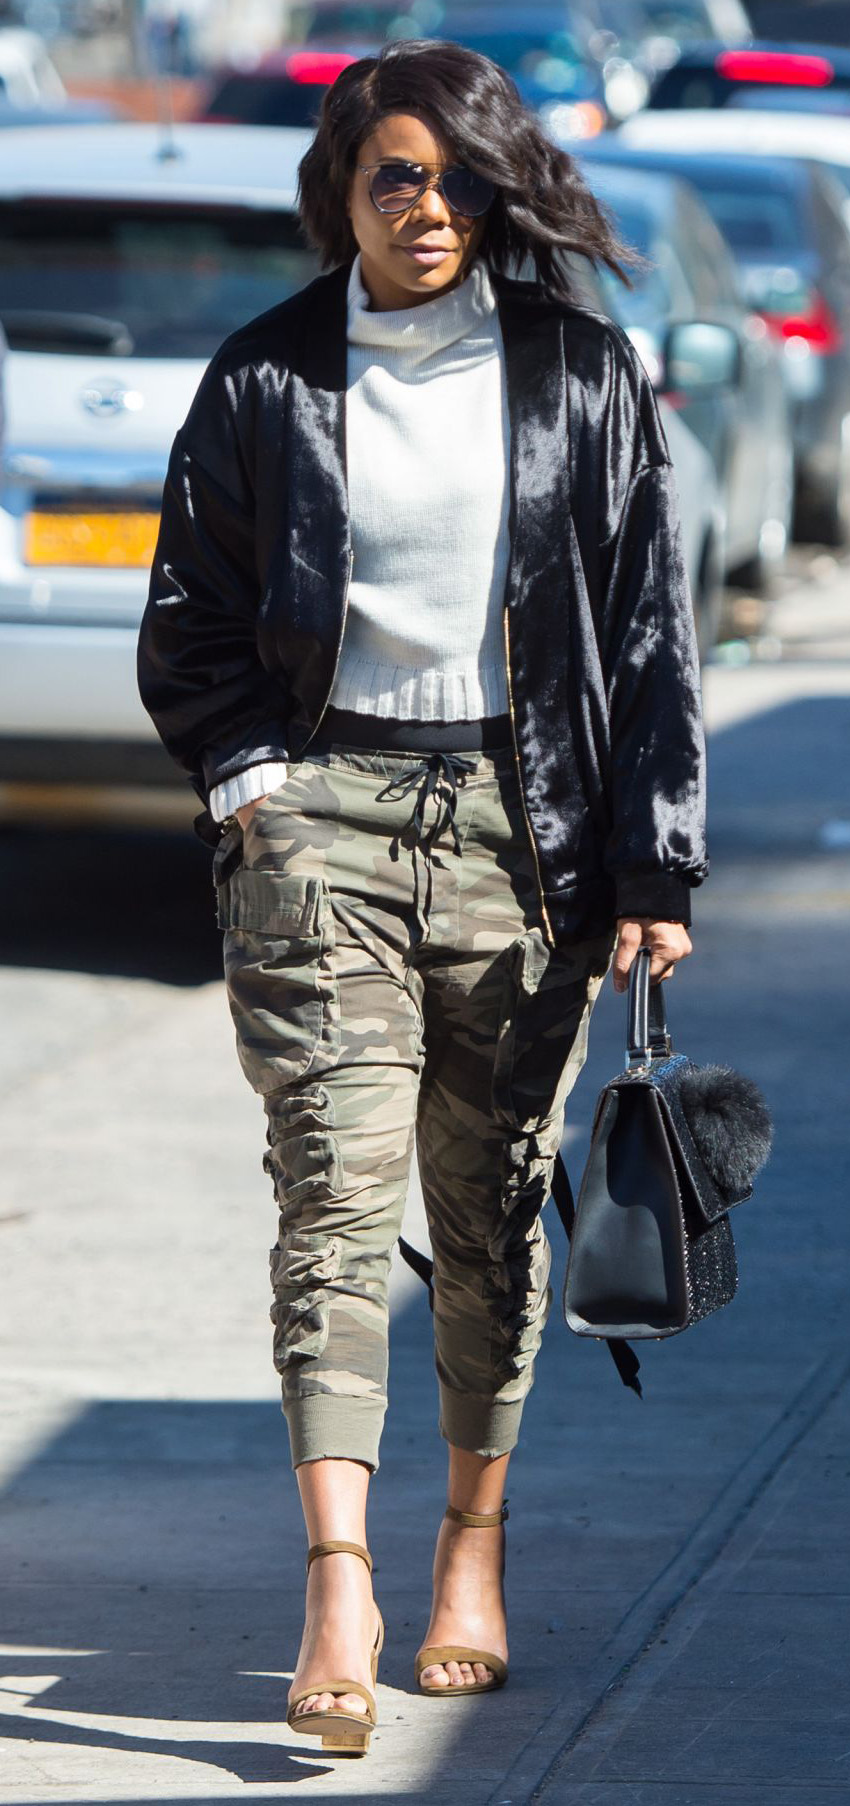 key-natural-sporty-style-type-gabrielleunion-cargo-army-camo-joggers-harem-sweater-black-jacket-sandals-street.jpg